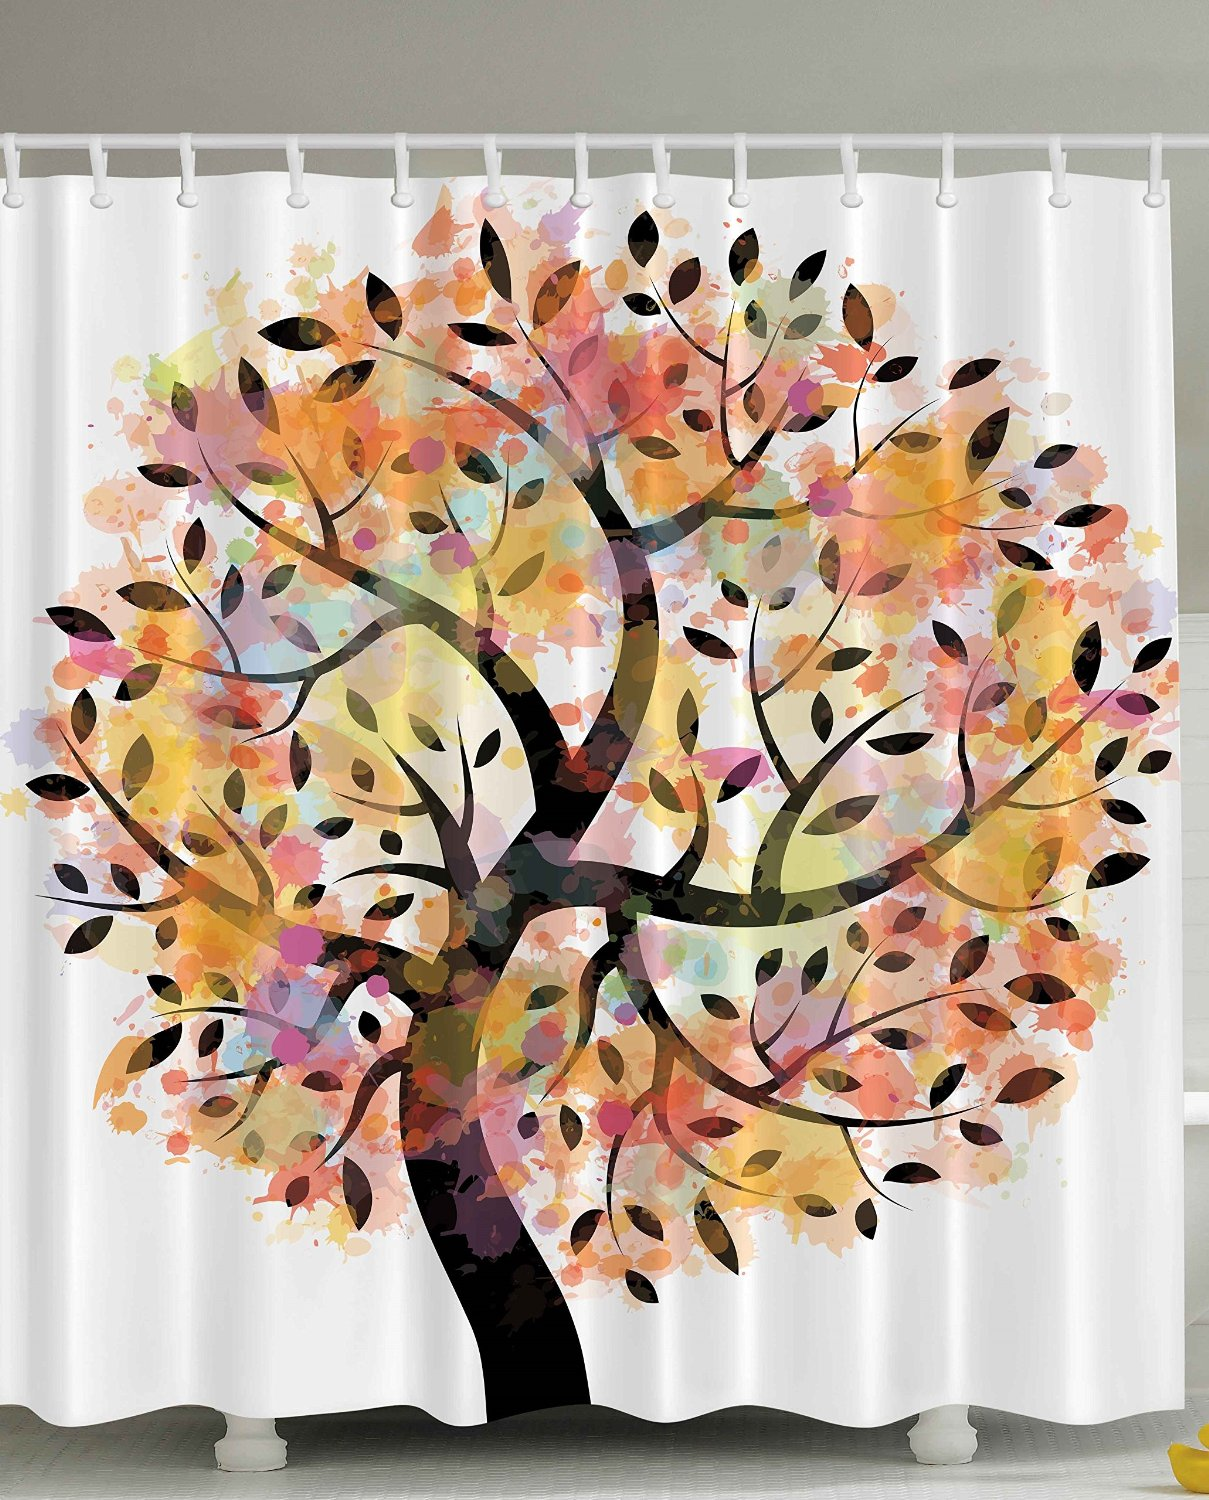 Autumn Leaves Shower Curtain Part   46: Autumn Leaves Shower Curtains Fabric